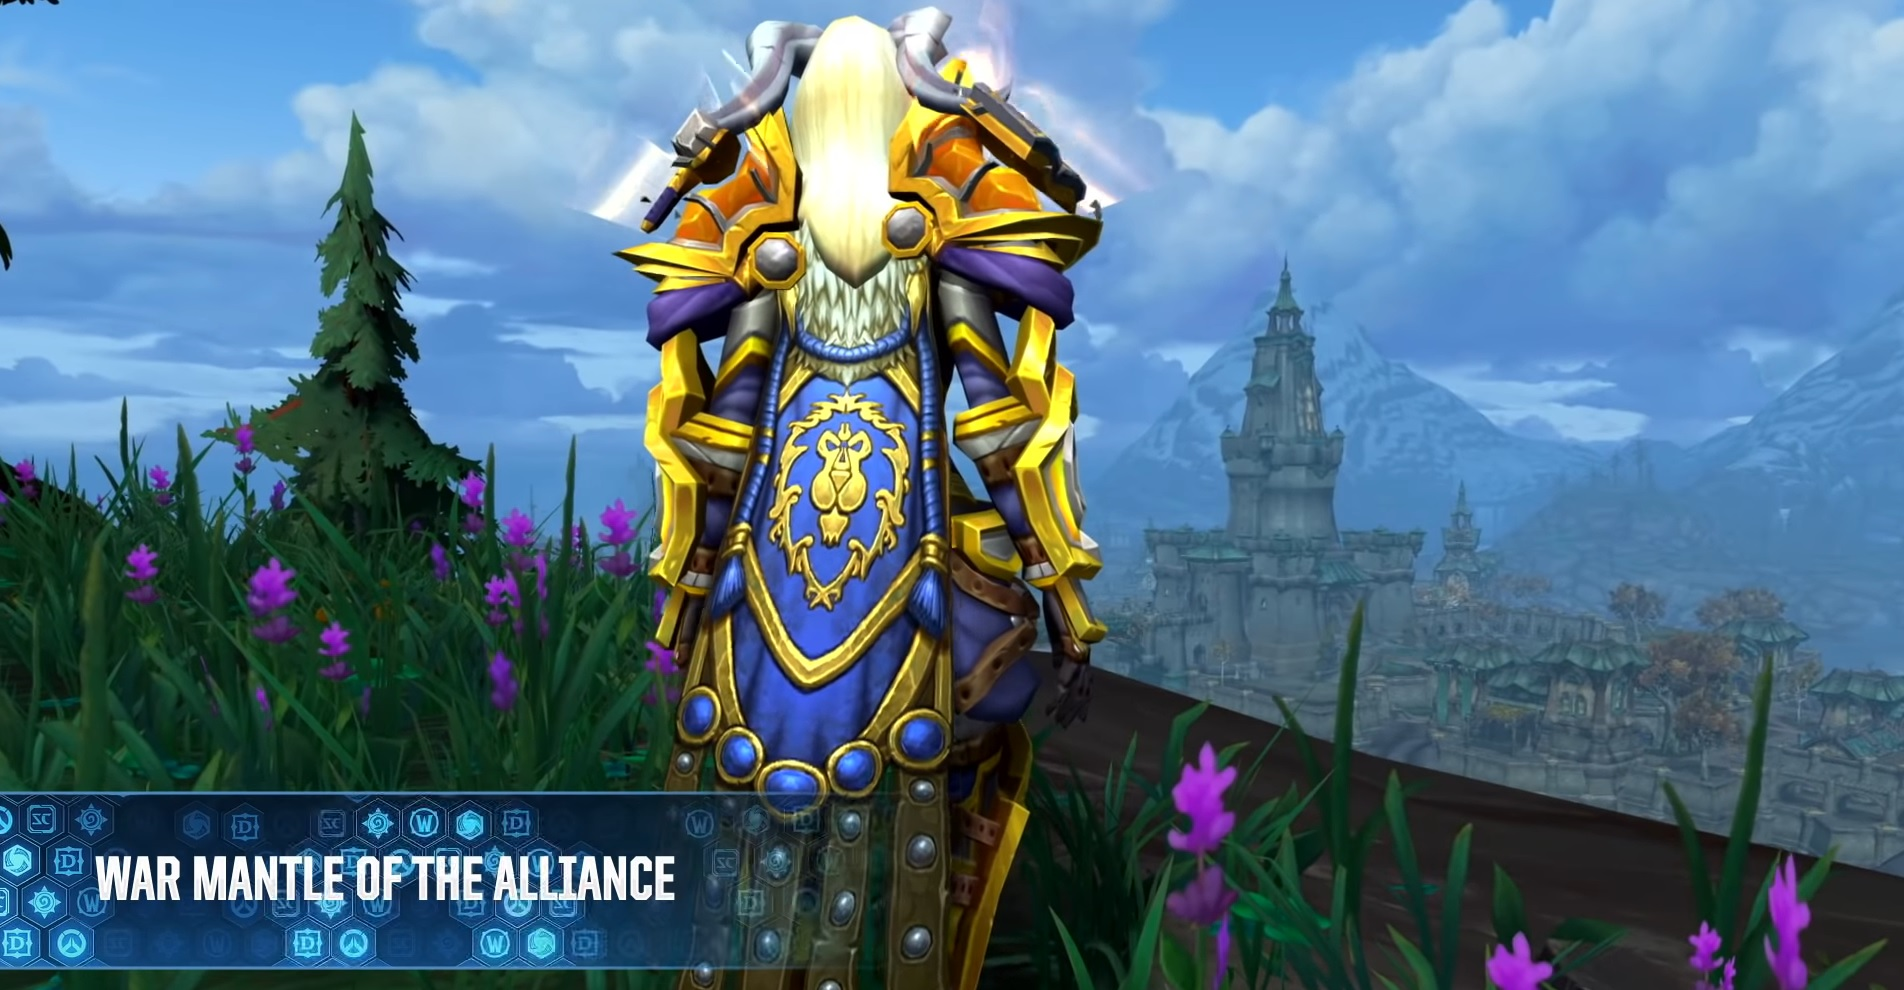 WoW War Mantle of the Alliance